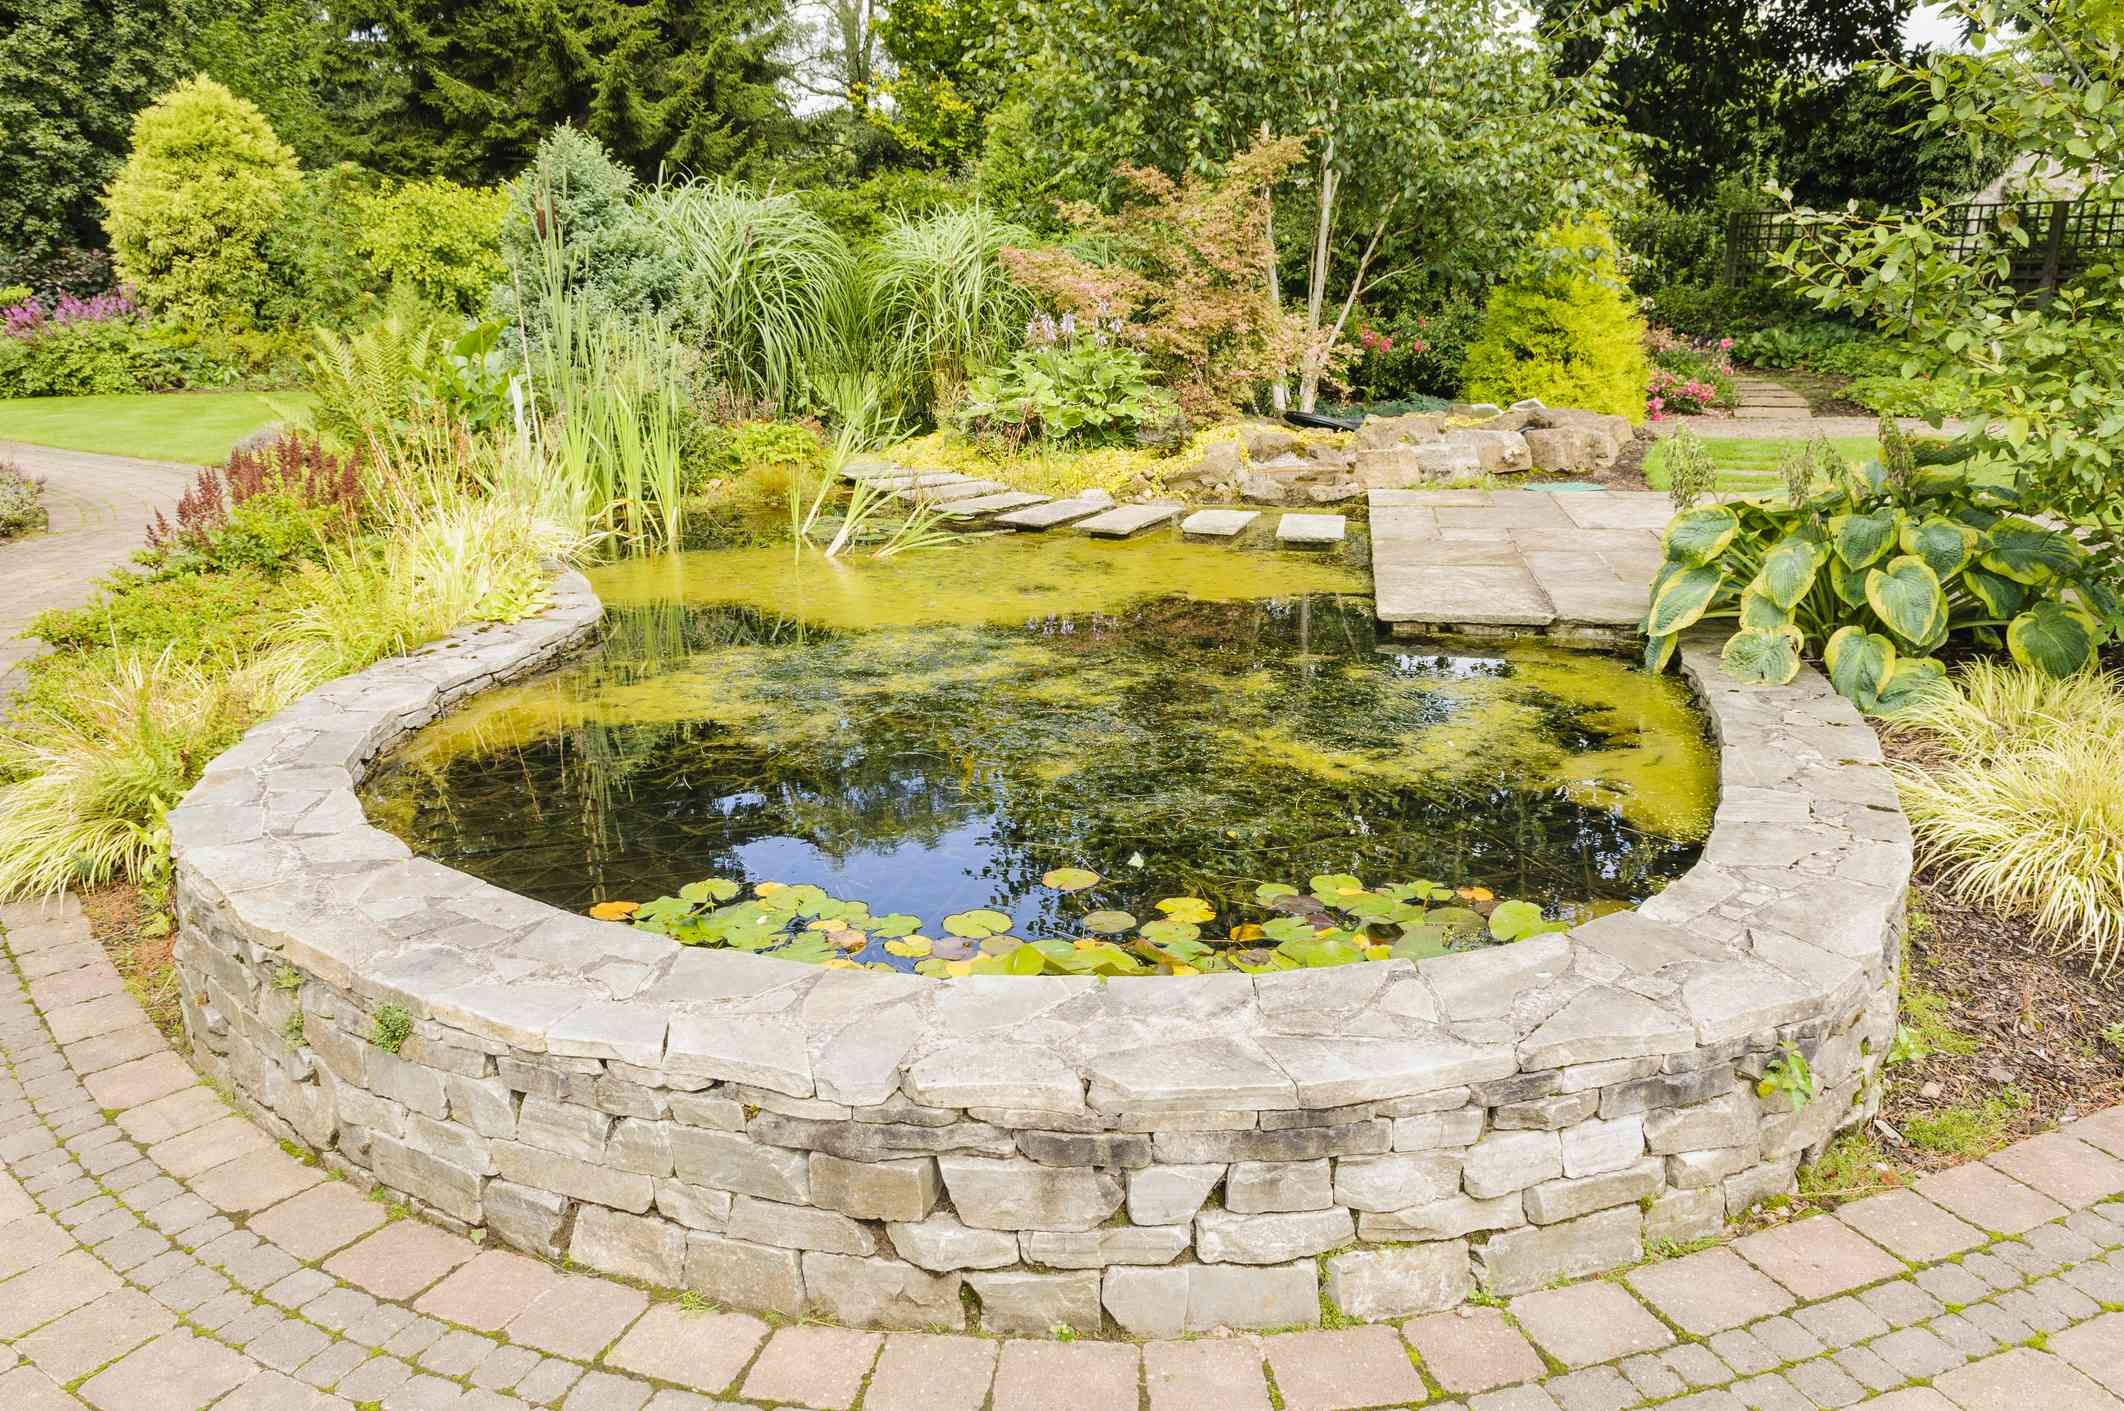 Retaining wall used to enclose a garden pond